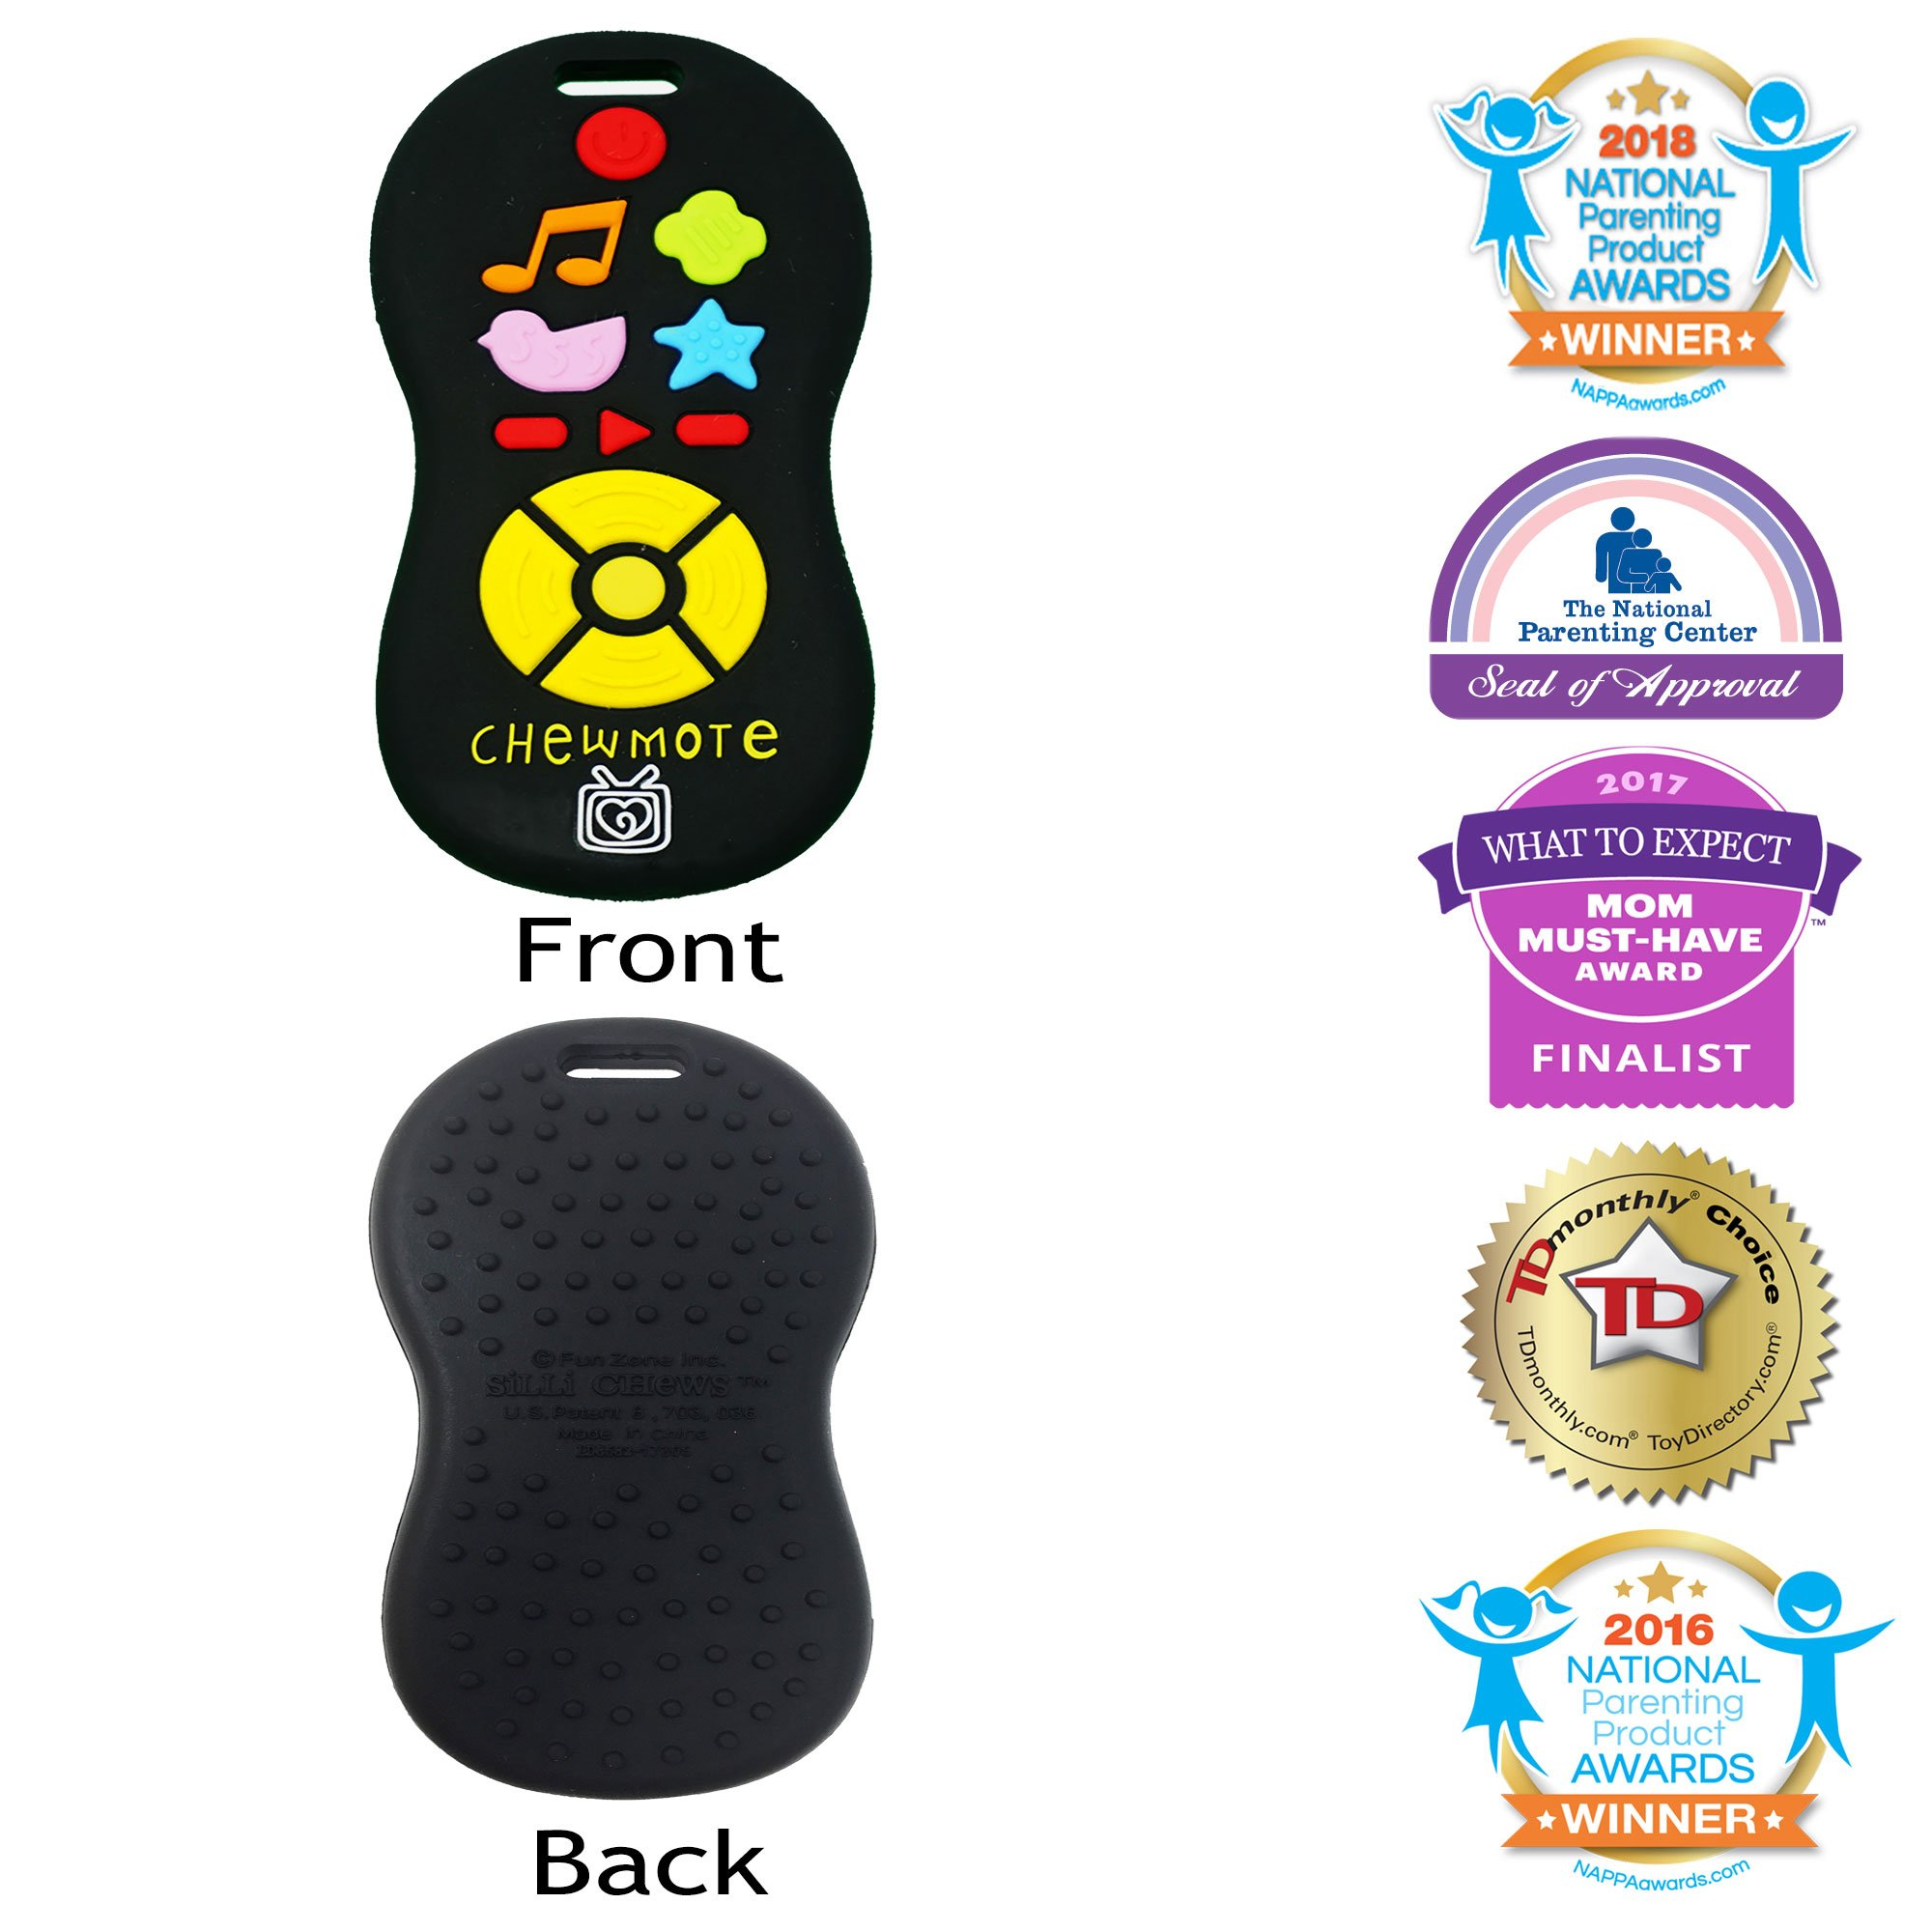 Silli Chews Unisex TV Remote Control Toy Chewmote Favorite Baby Teether Infant Silicone Teething Toy Black Chew Toys